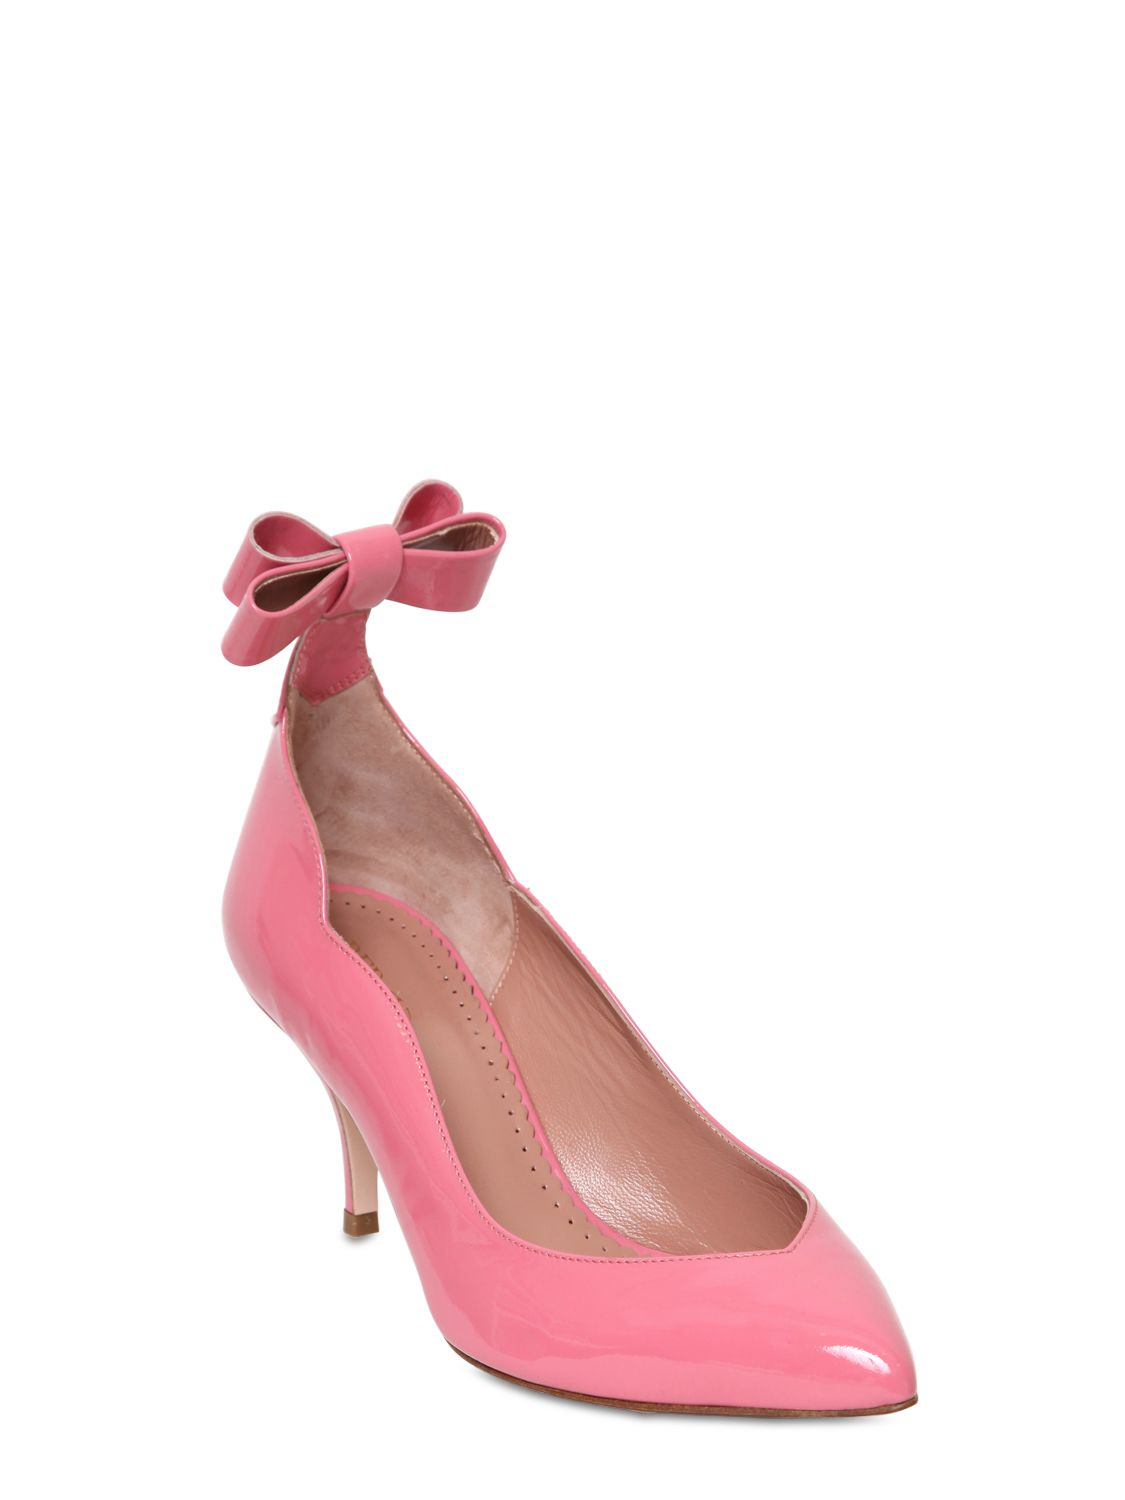 ad17a69252dd Lyst - RED Valentino 70Mm Patent Leather Bow Pumps in Pink